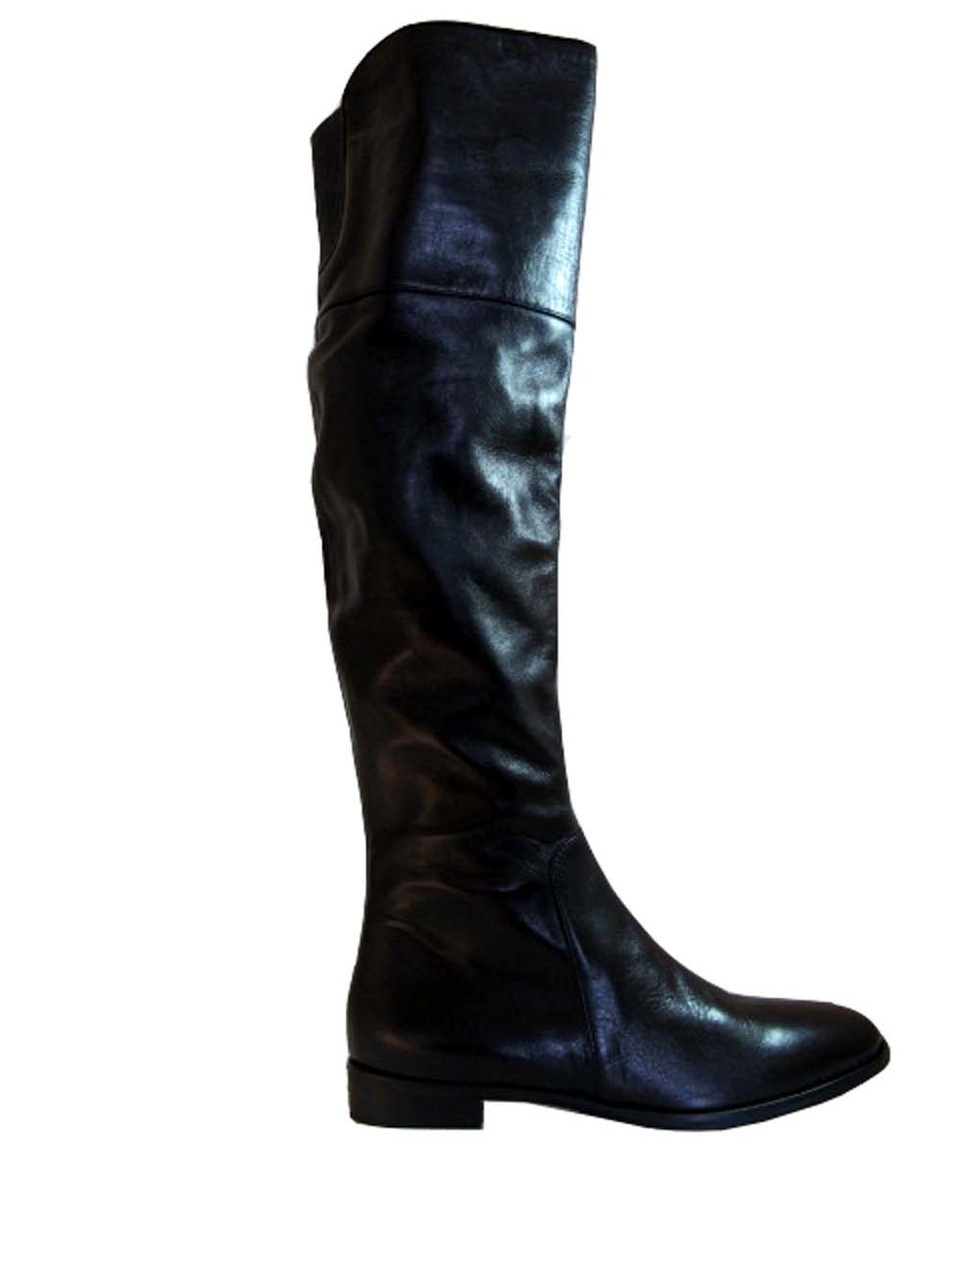 3f0113e6cf3a Women s Davinci Italian Leather 2667 Flat Knee High boots Black By ...